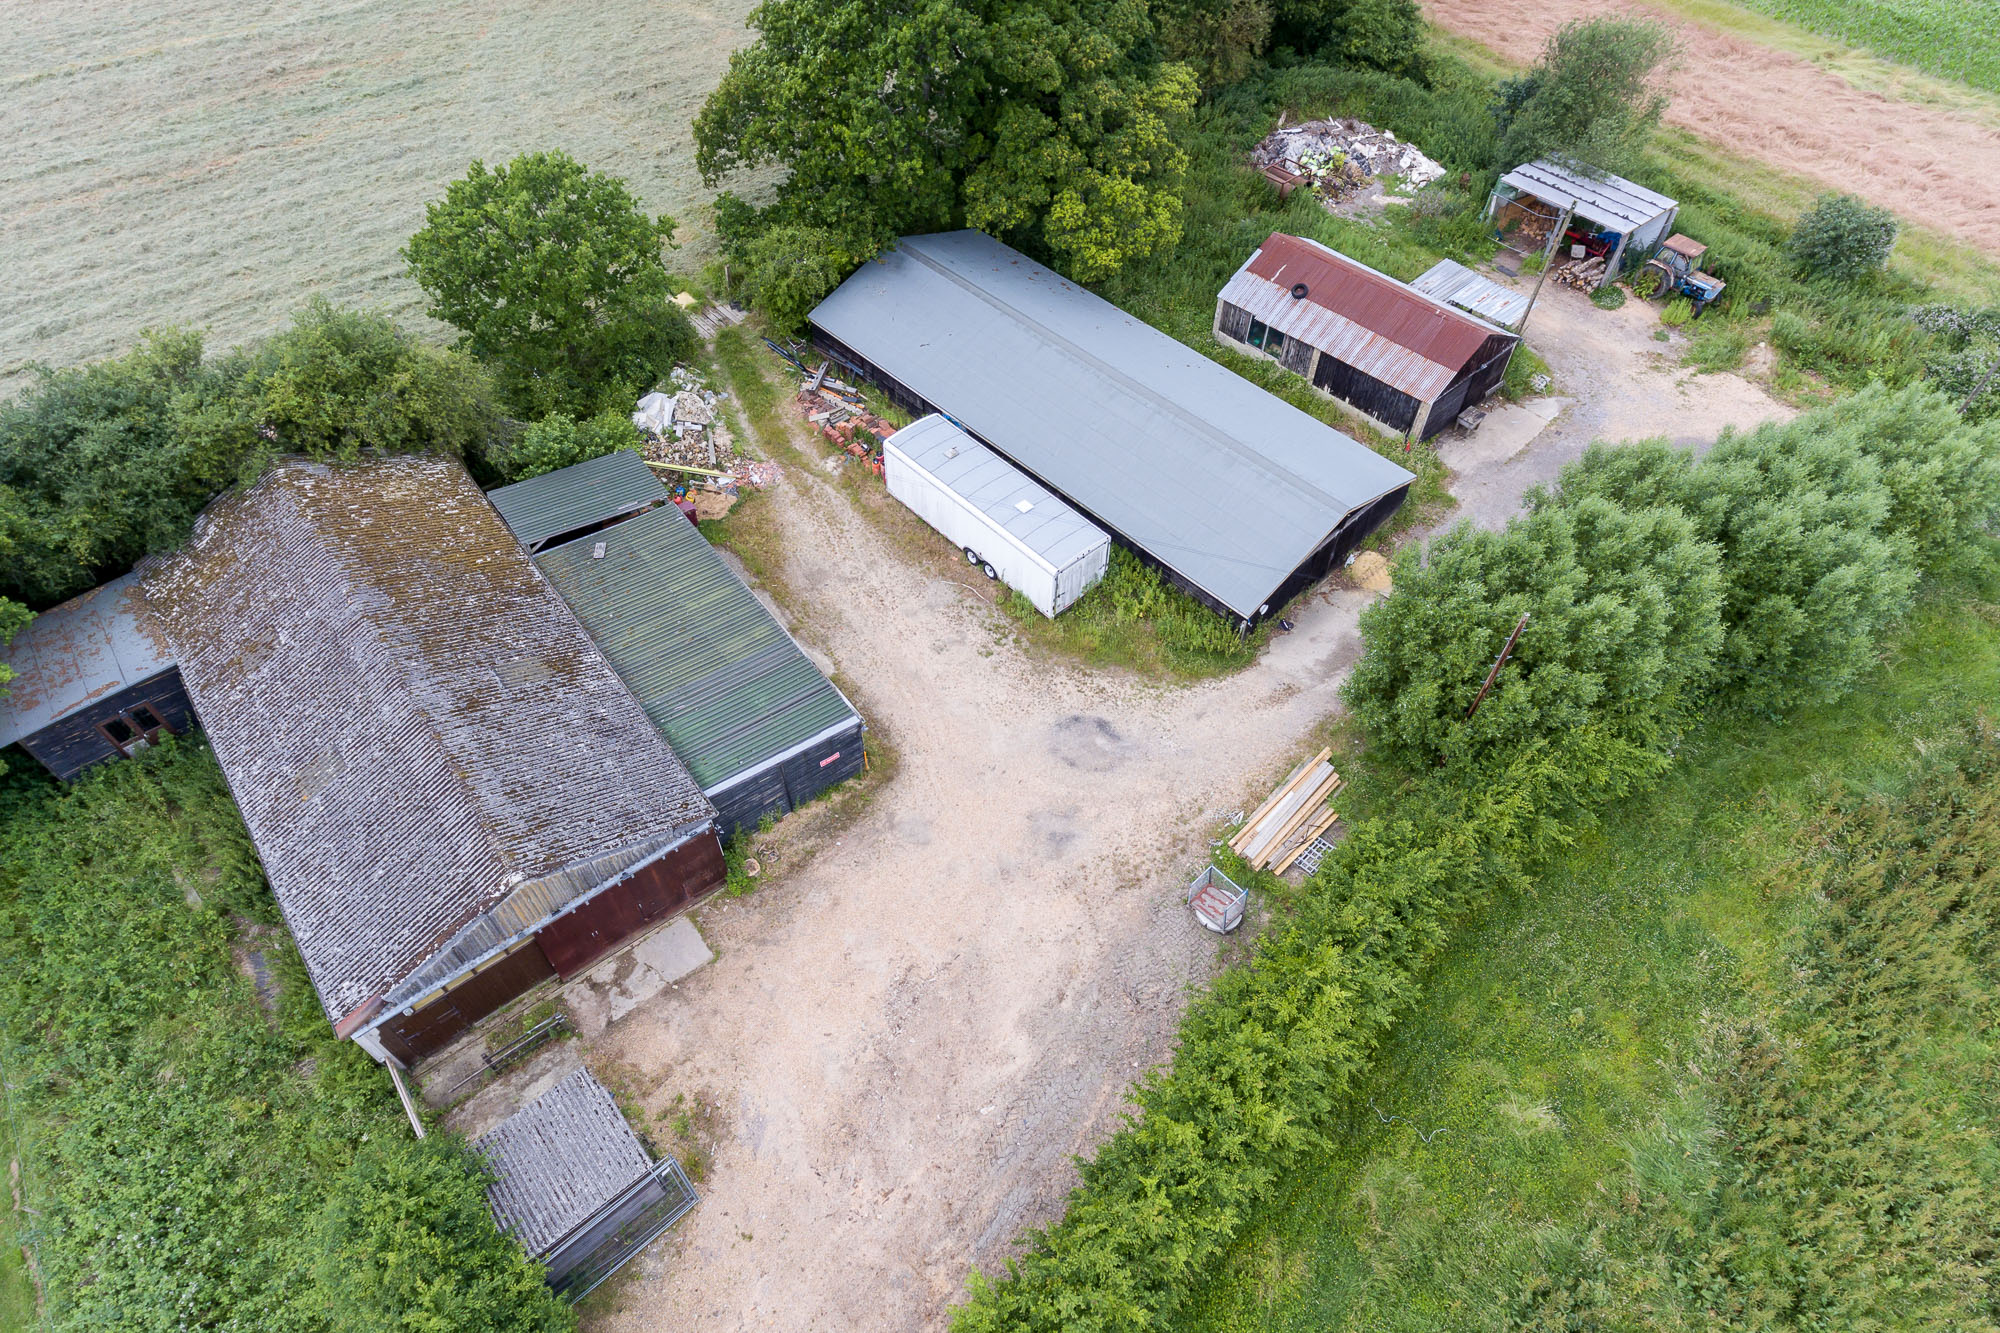 jonathan bond photography, aerial drone view of rooves of a commercial farm